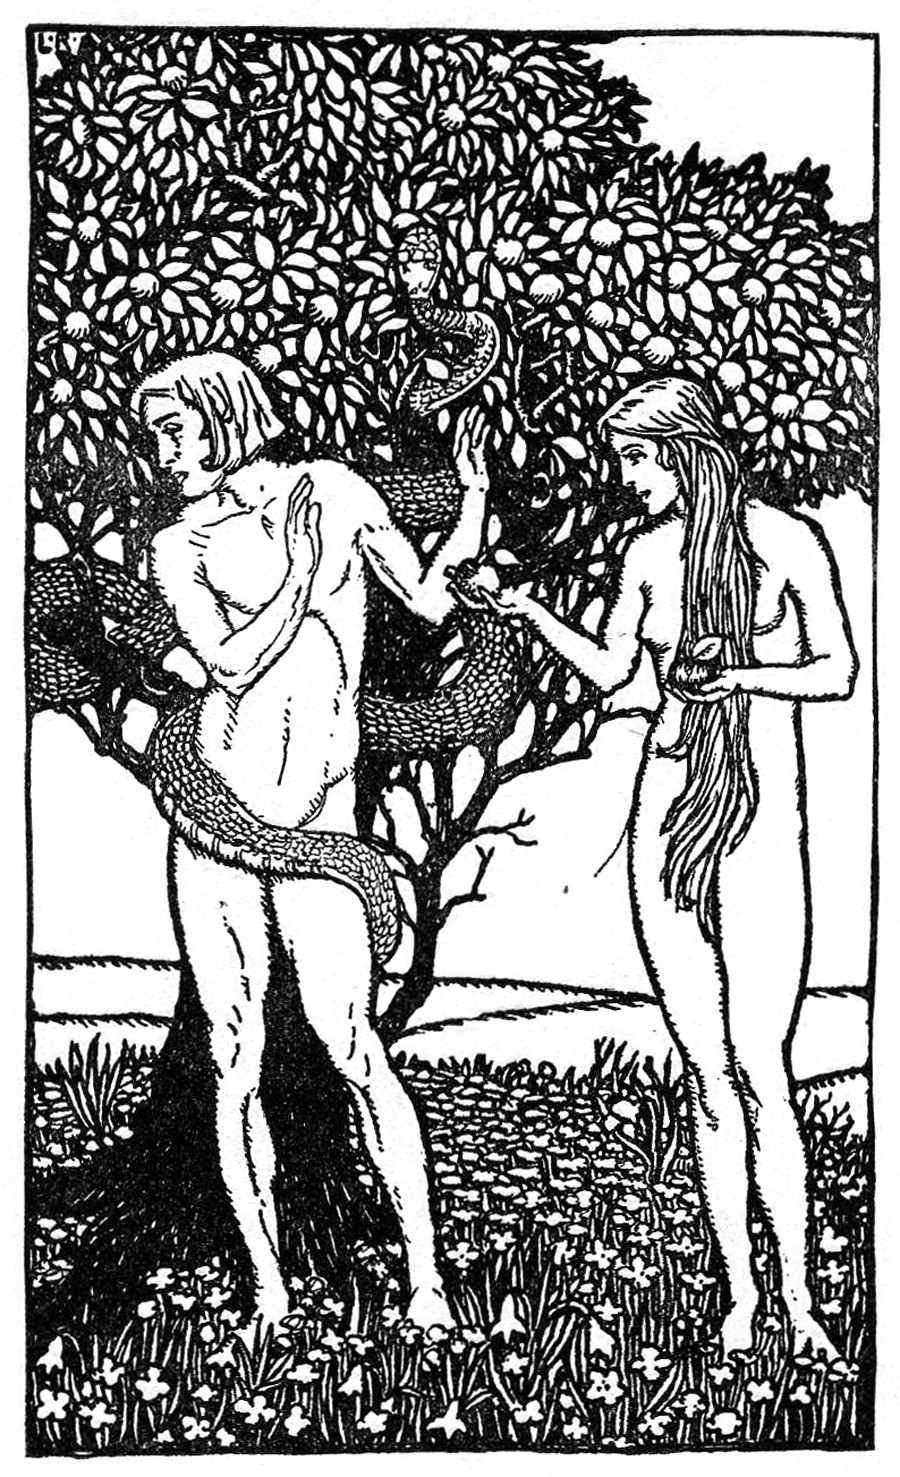 an analysis of the adam and eve concept by mark twain Free kindle book and epub digitized and proofread by project gutenberg.